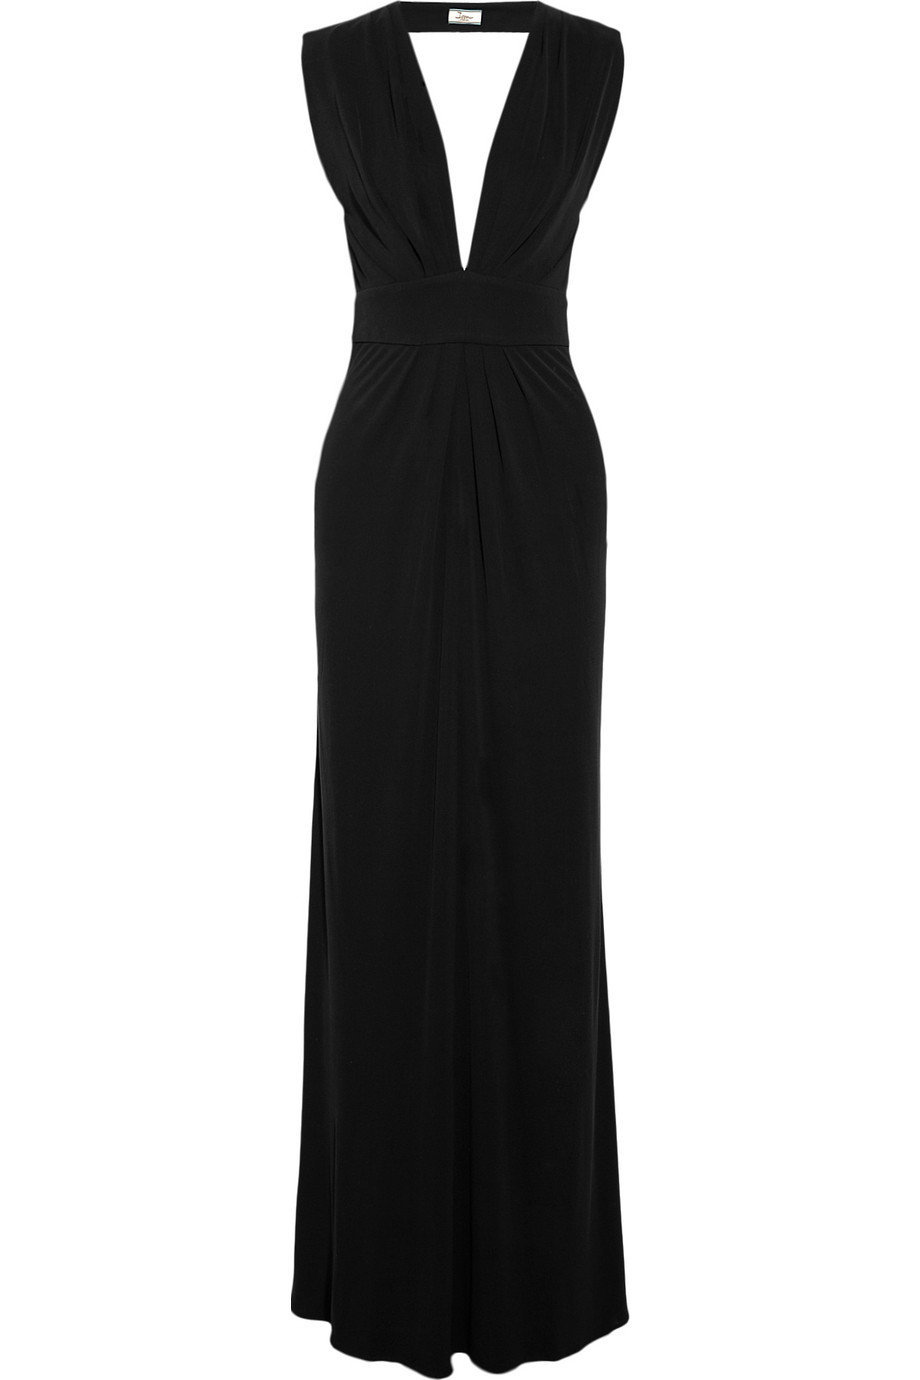 Issa|Pleated silk-crepe jersey gown|NET-A-PORTER.COM